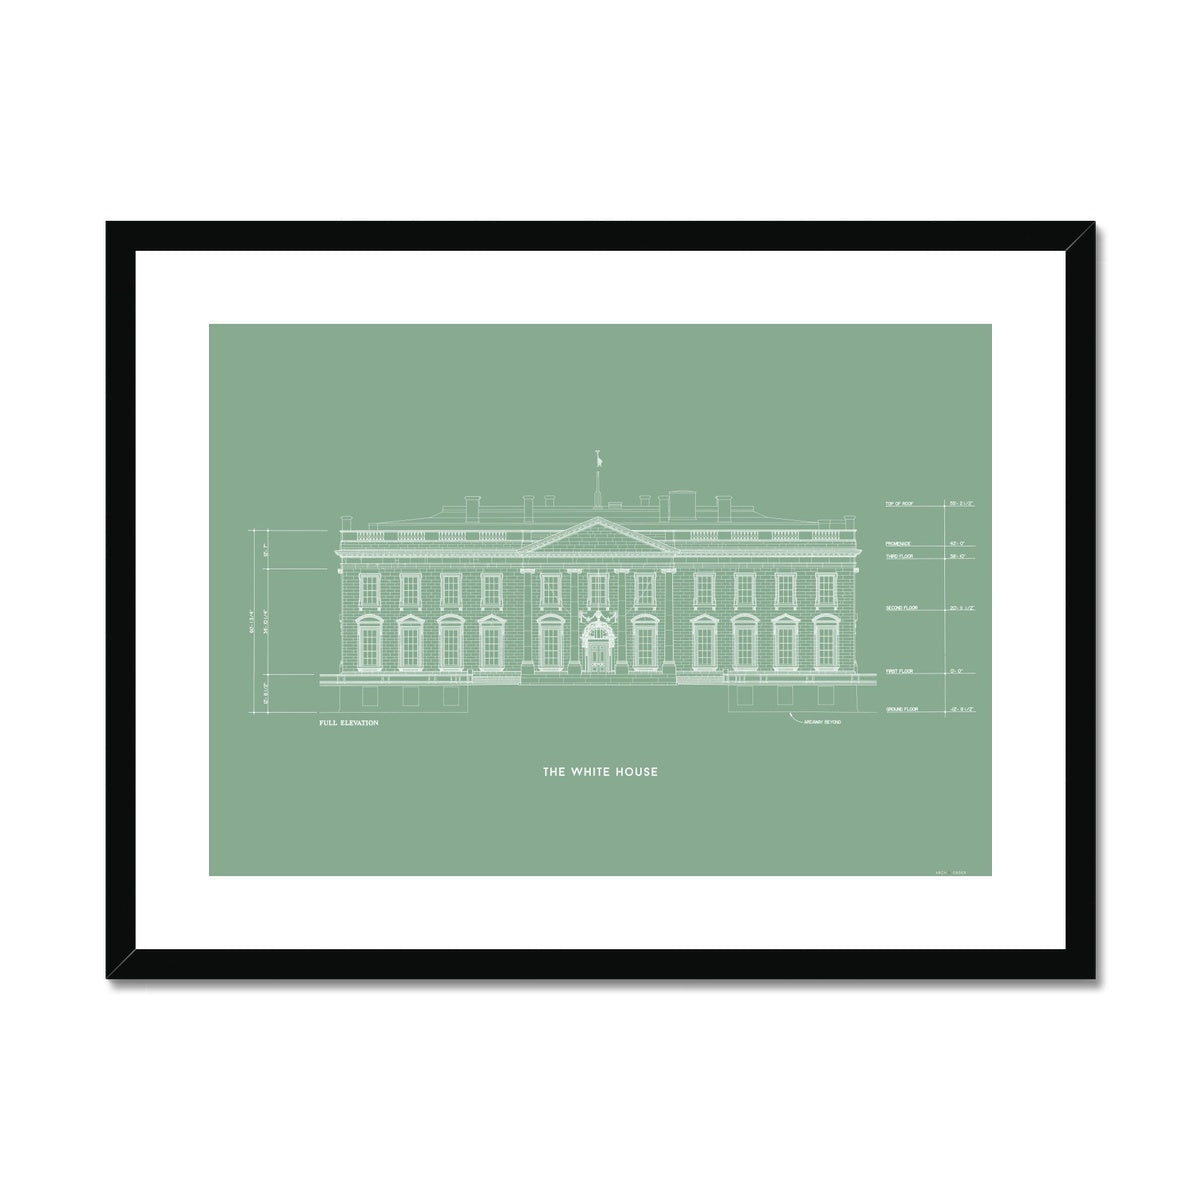 The White House North Elevation - Green -  Framed & Mounted Print